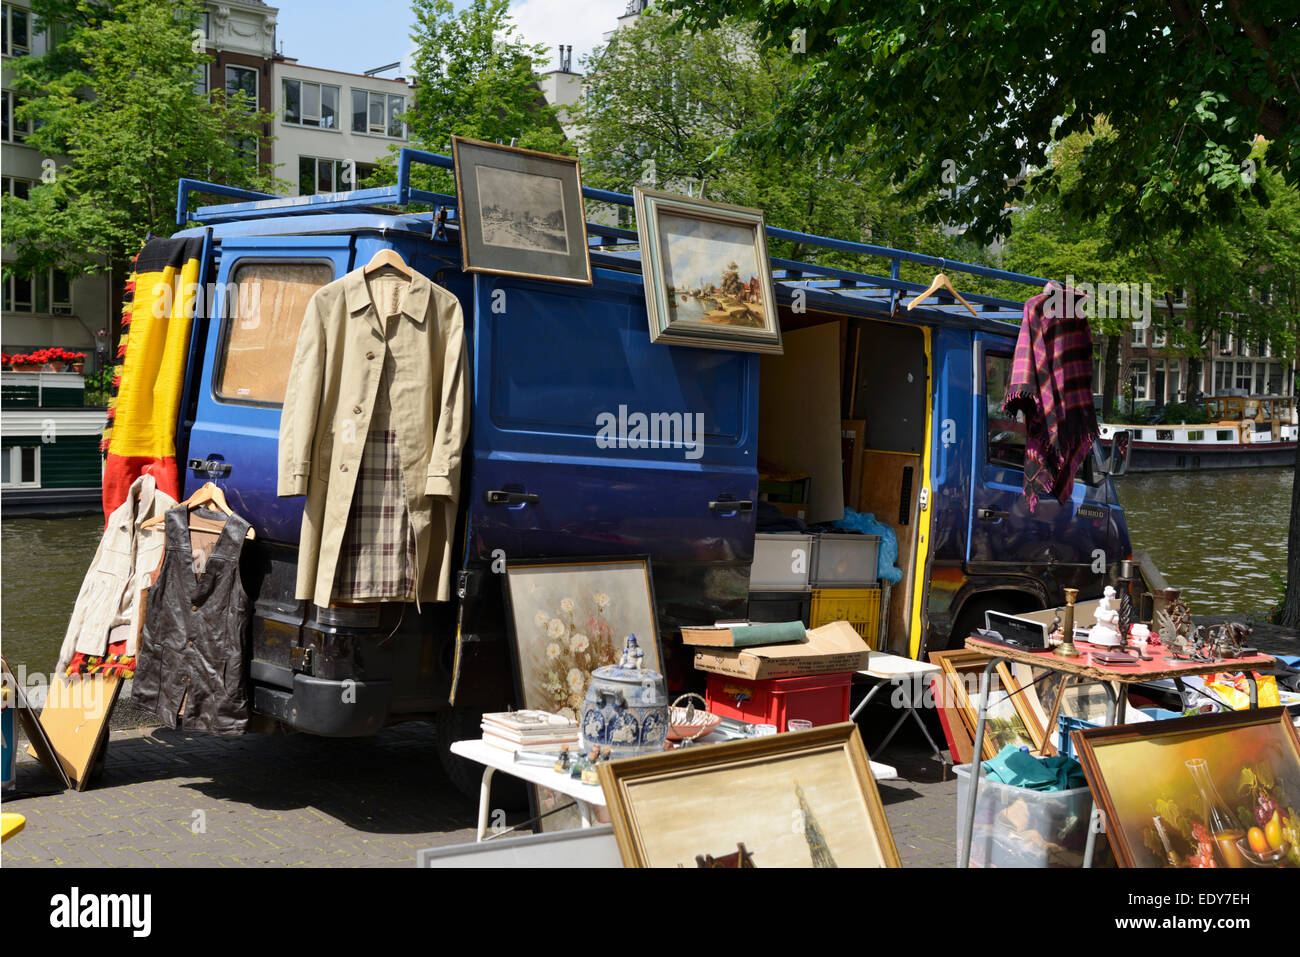 Waterlooplein Flea Market, Amsterdam, North Holland, Netherlands, Europe - Stock Image